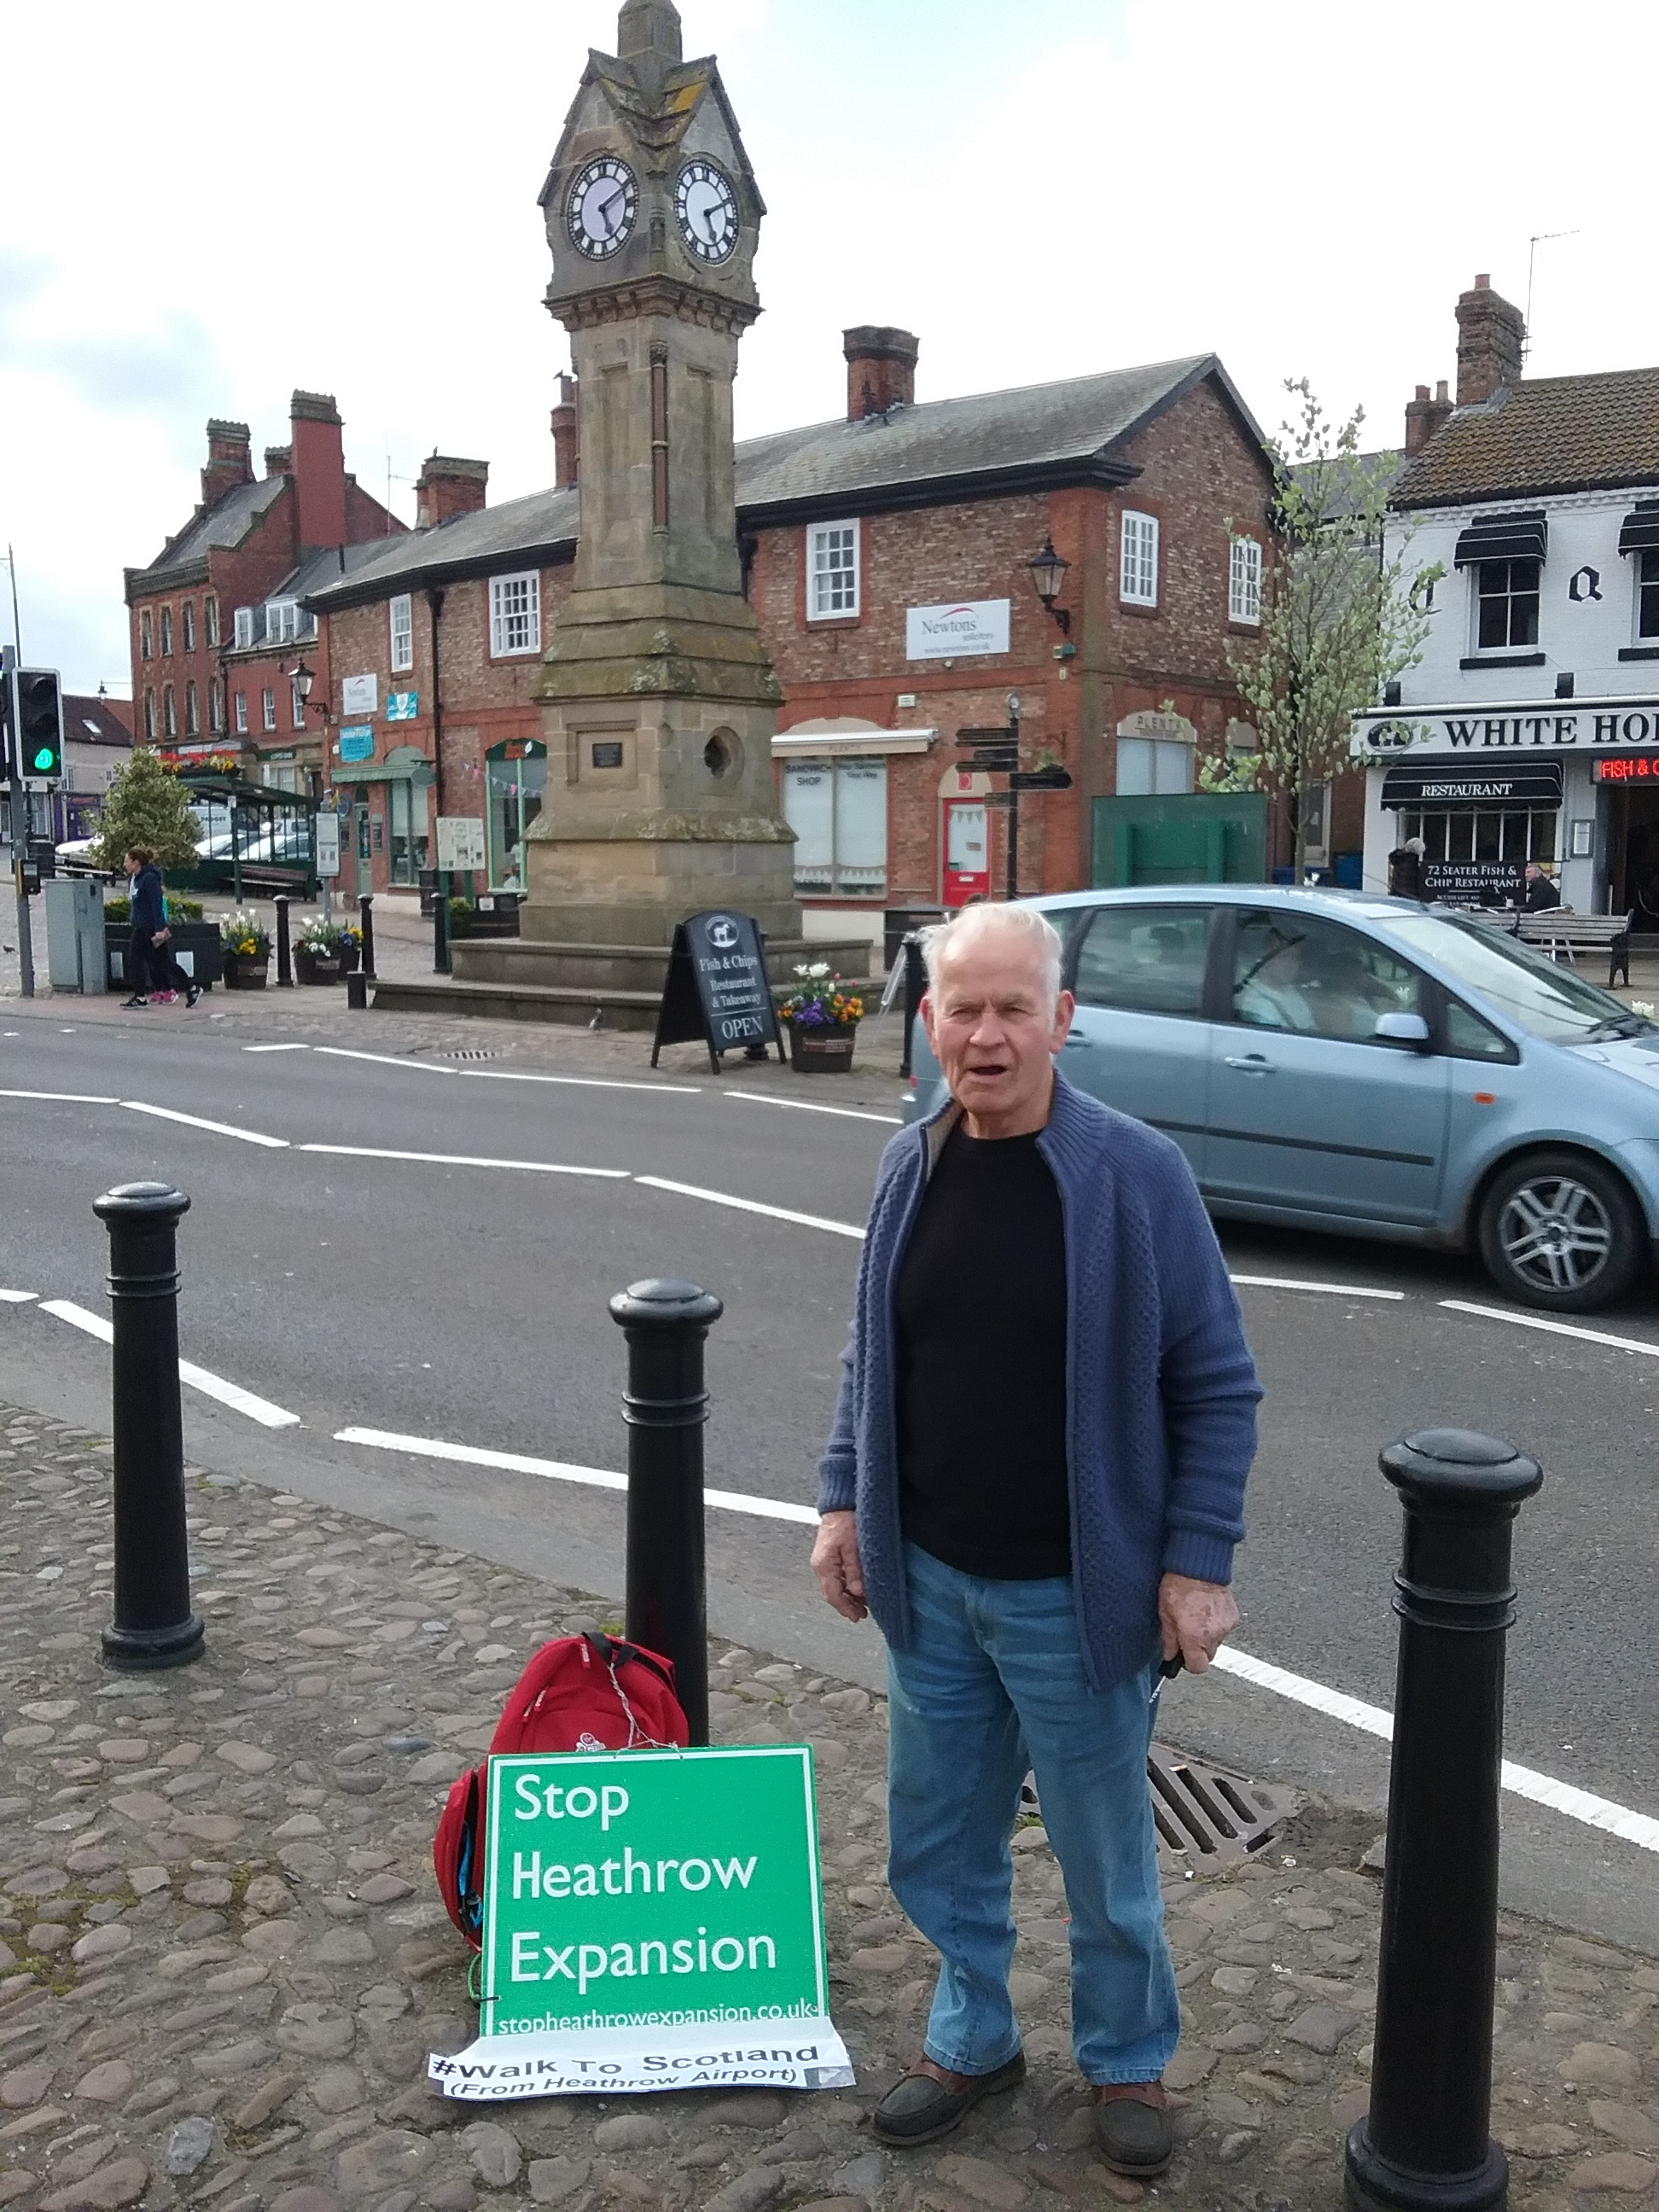 Thirsk:Lovely place but whatever you do Ray, don't lose the key to the van.